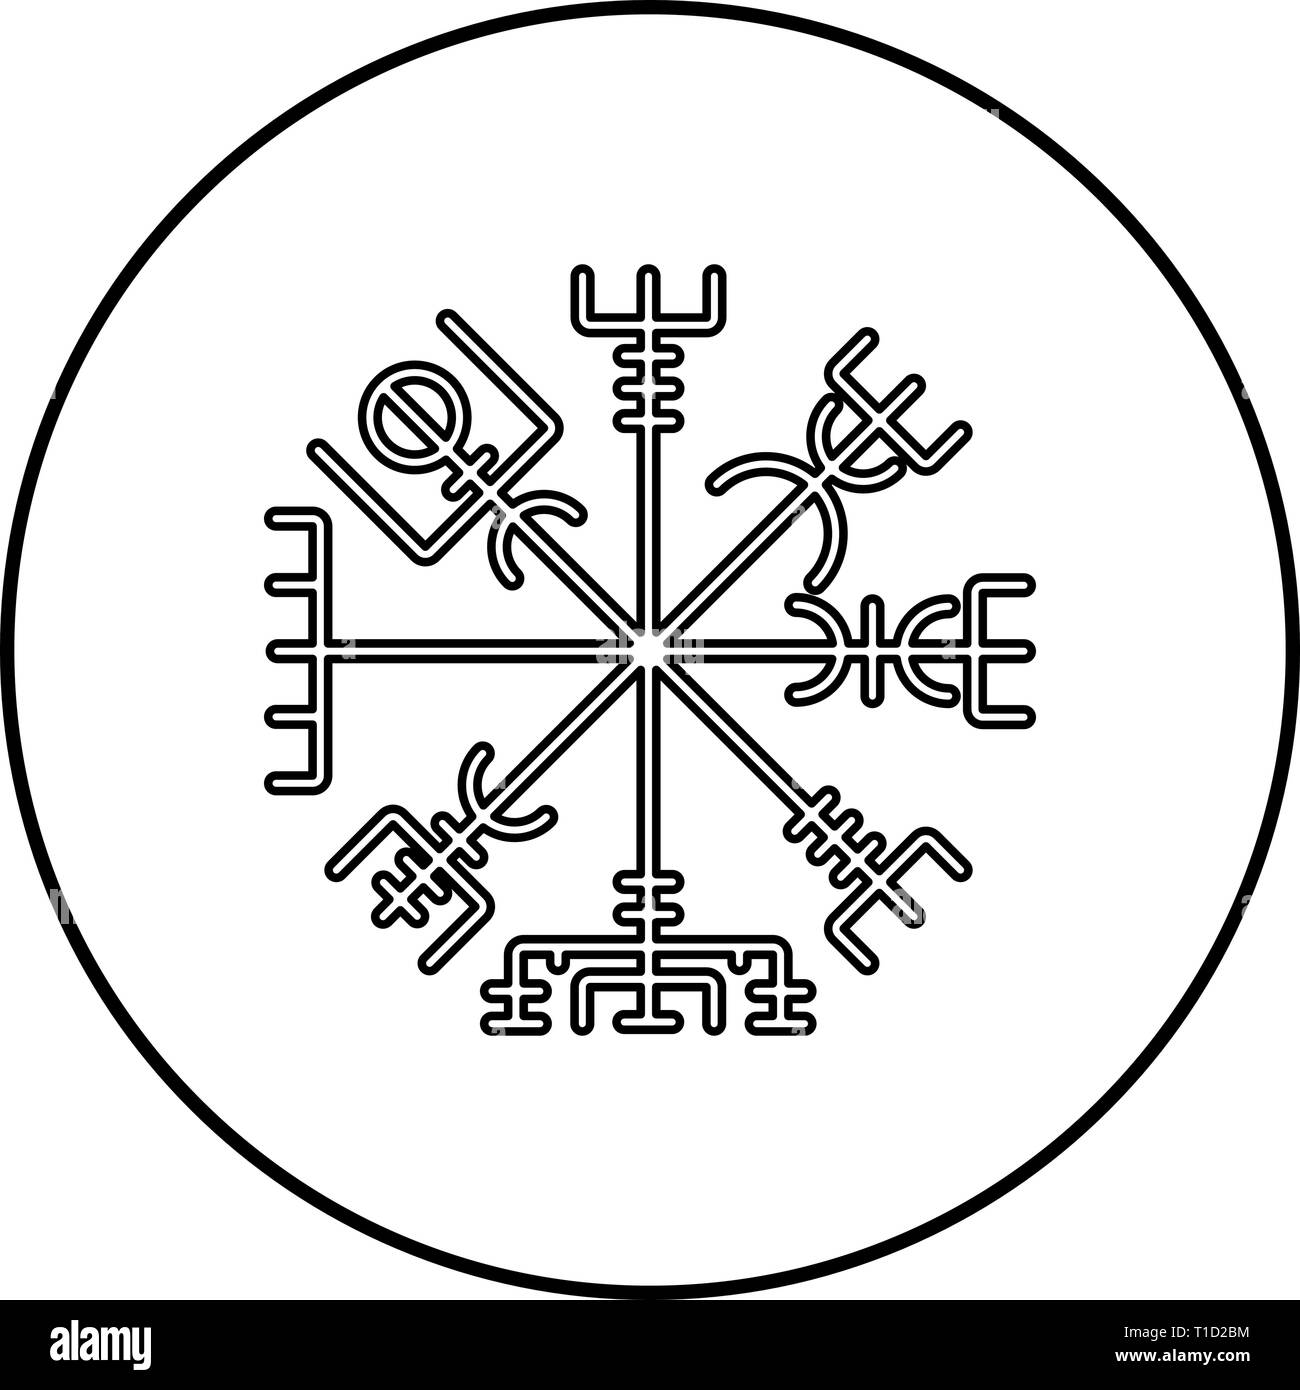 Vegvisir runic compass galdrastav Navigation compass symbol icon outline black color vector in circle round illustration flat style simple image - Stock Image